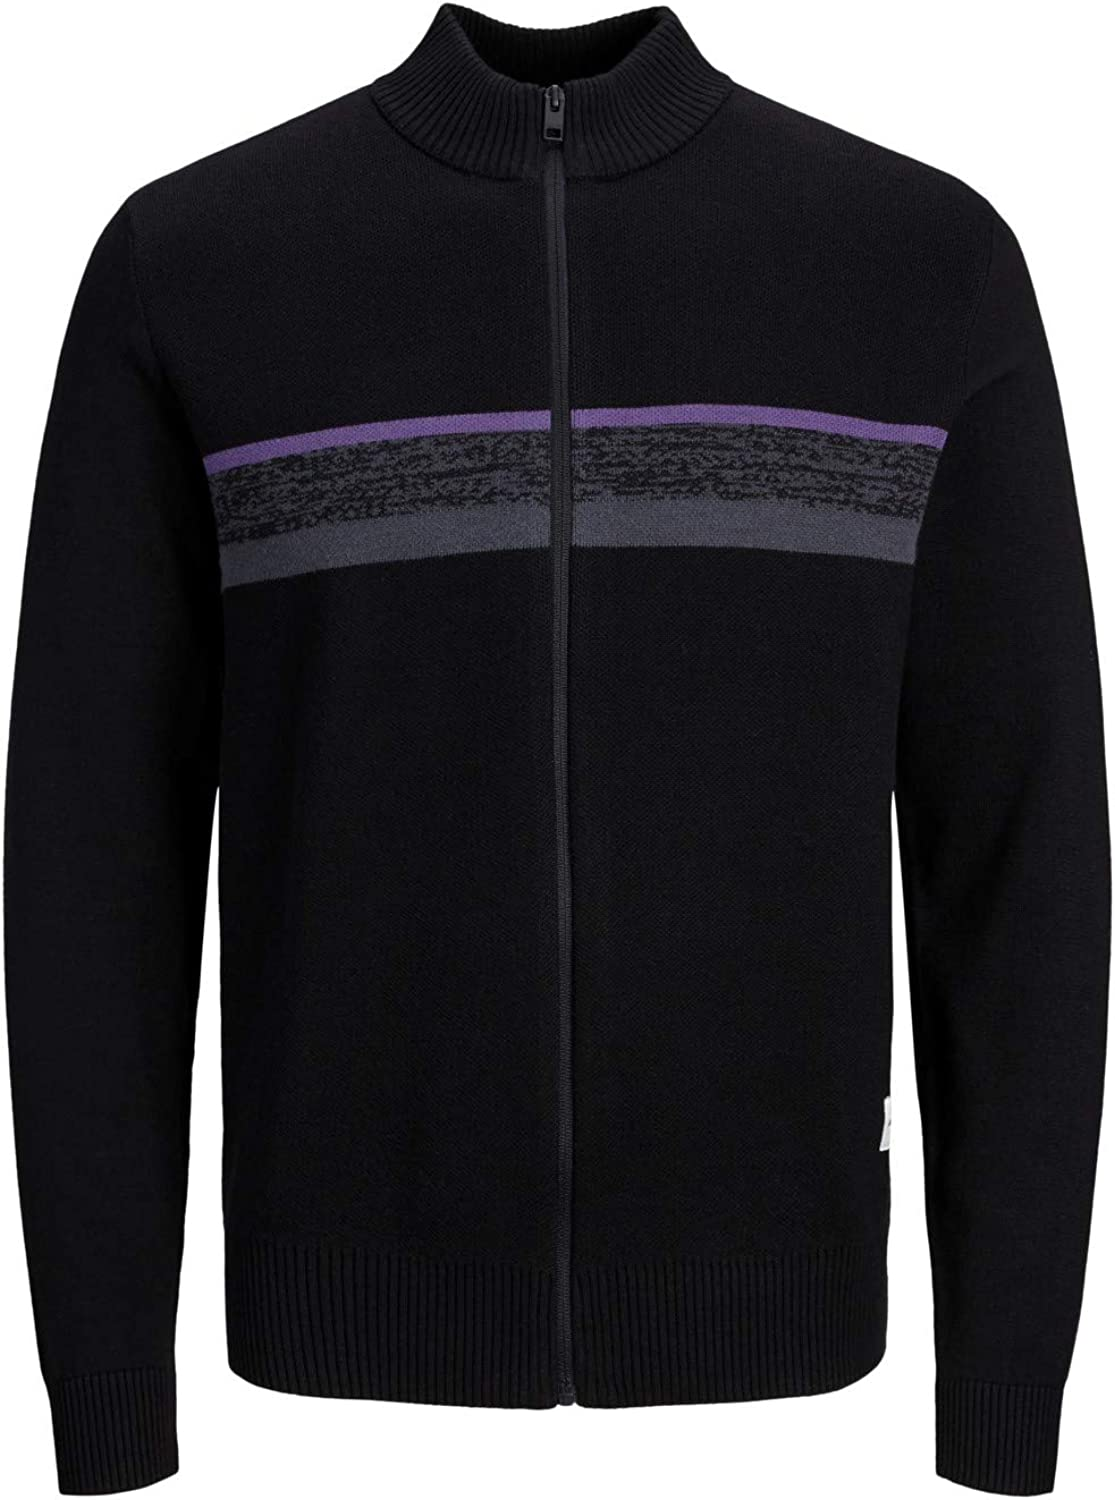 Jack and Jones Mens Knitted Cardigan Full Front Zipper Stand Collar High Neck Ribbed Hem Black Casual Jumper